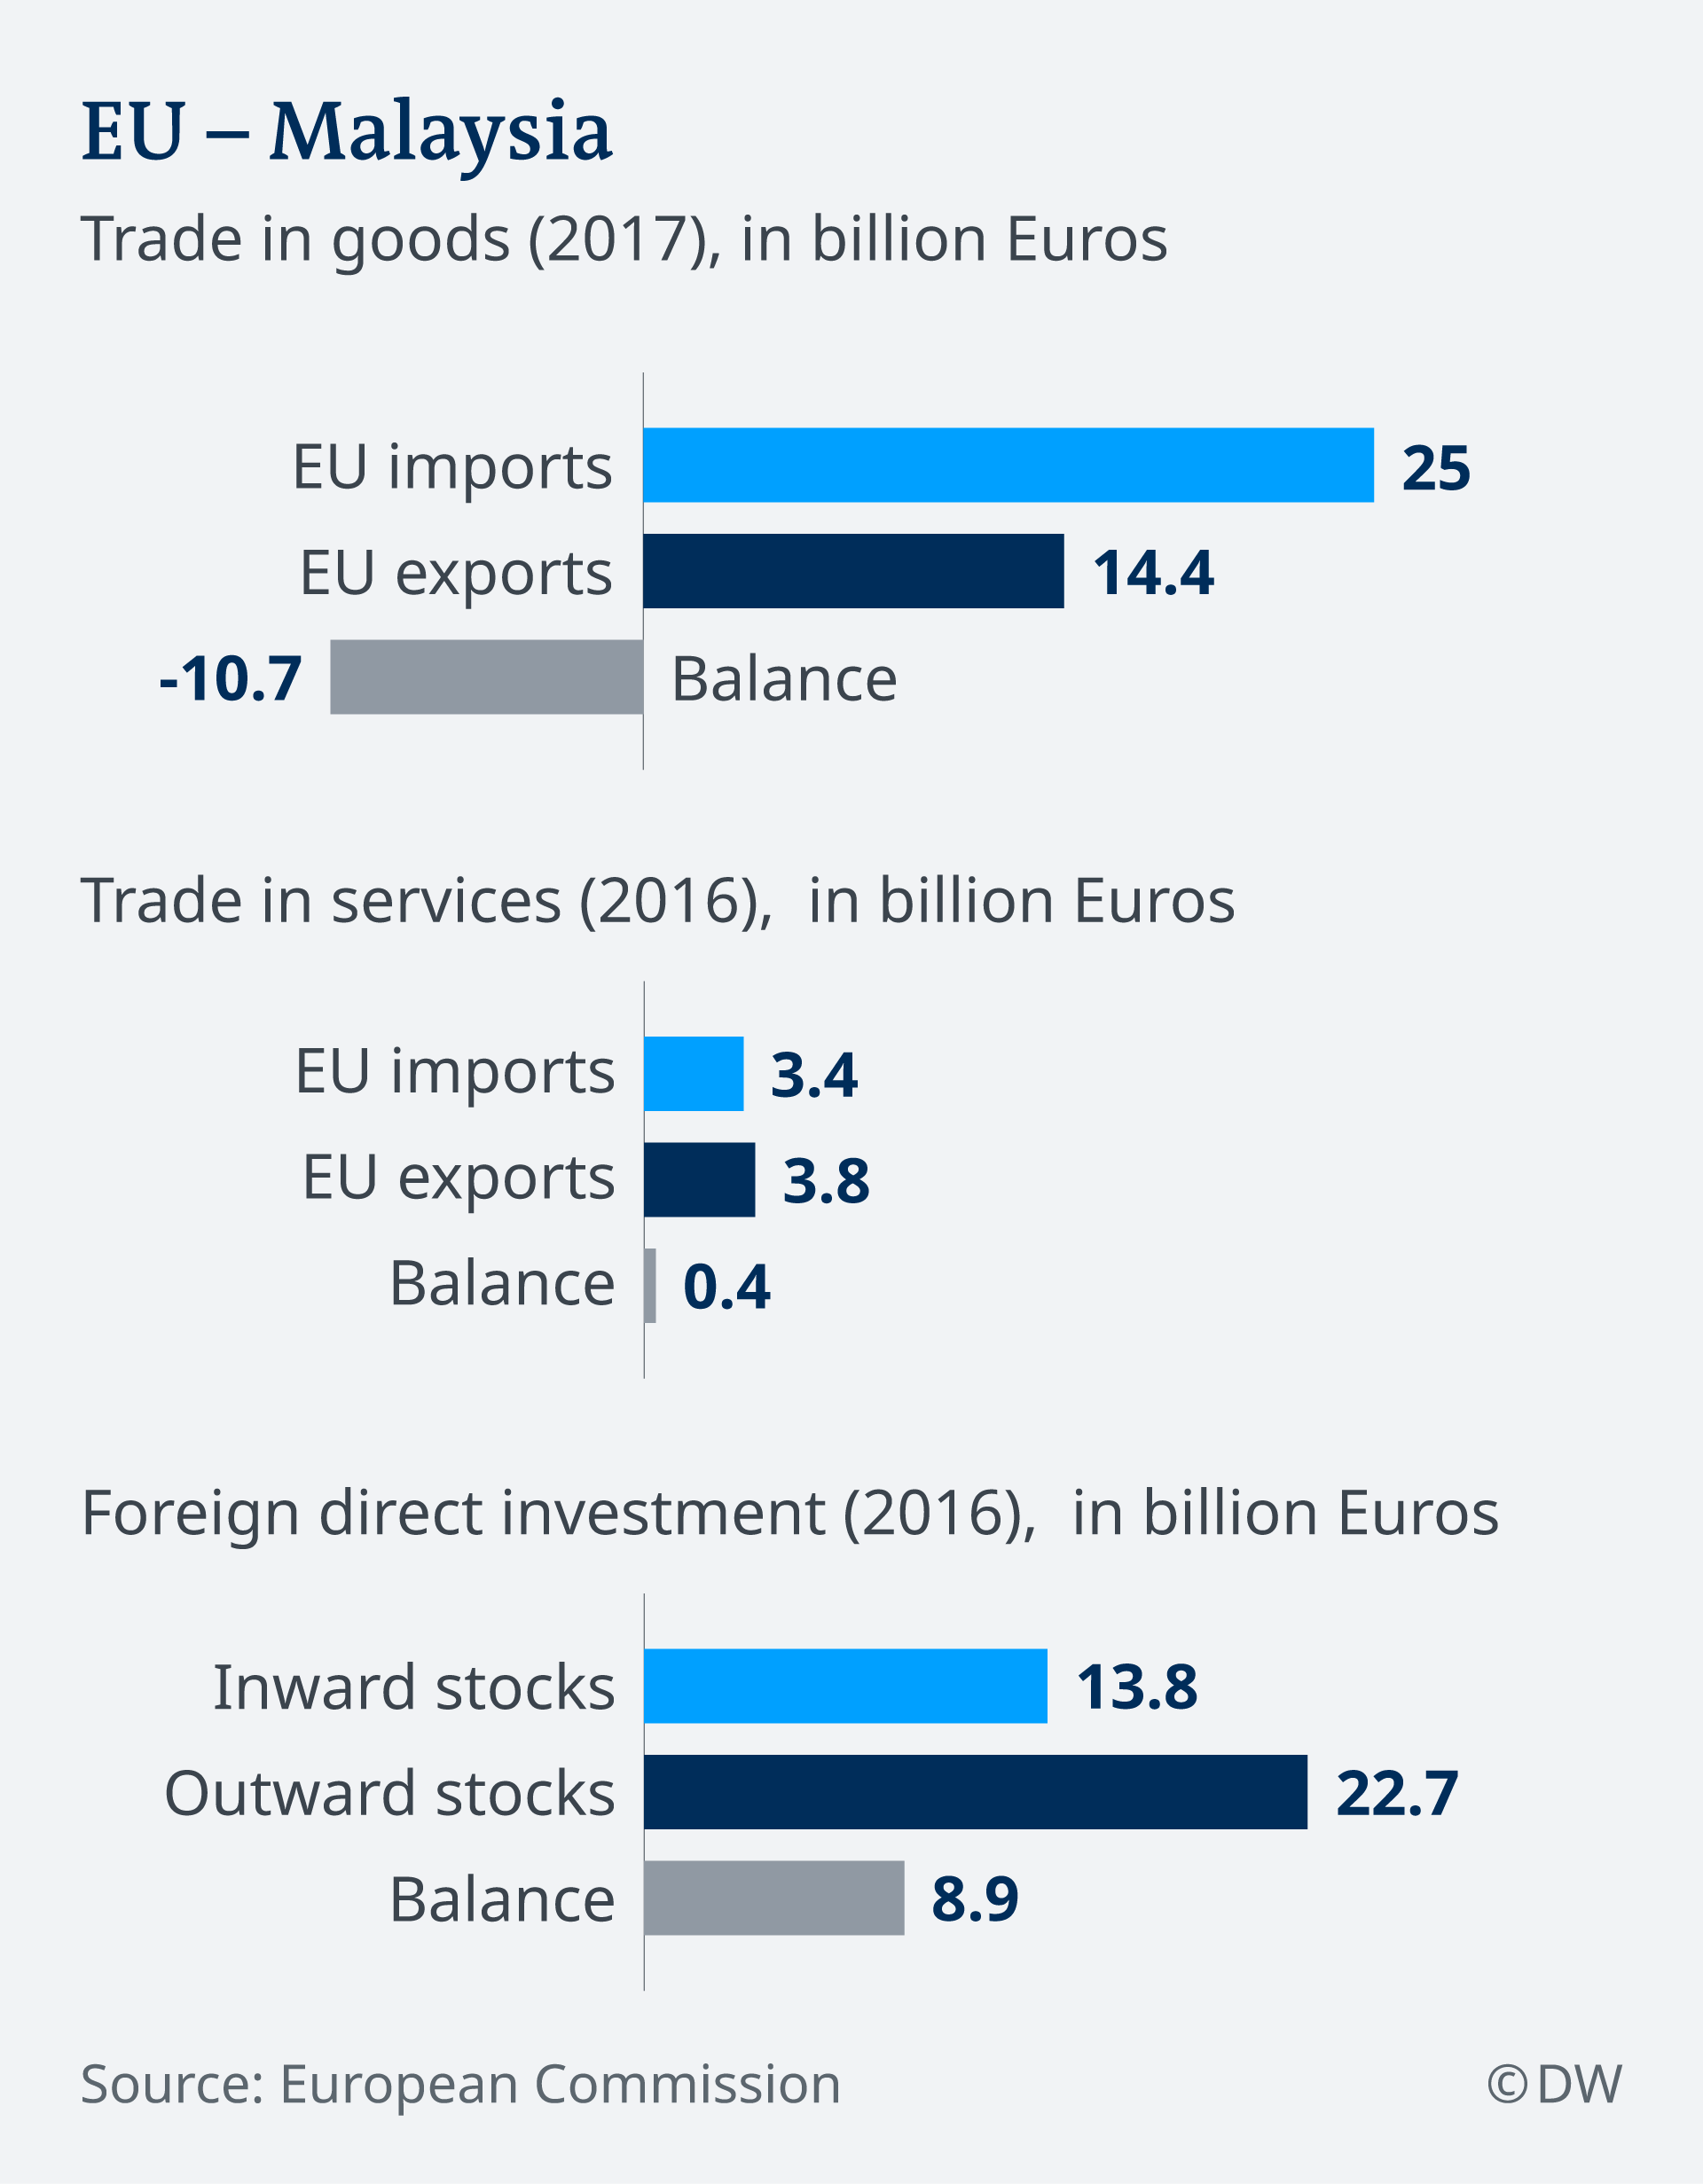 An infographic showing EU-Malaysia trade relations